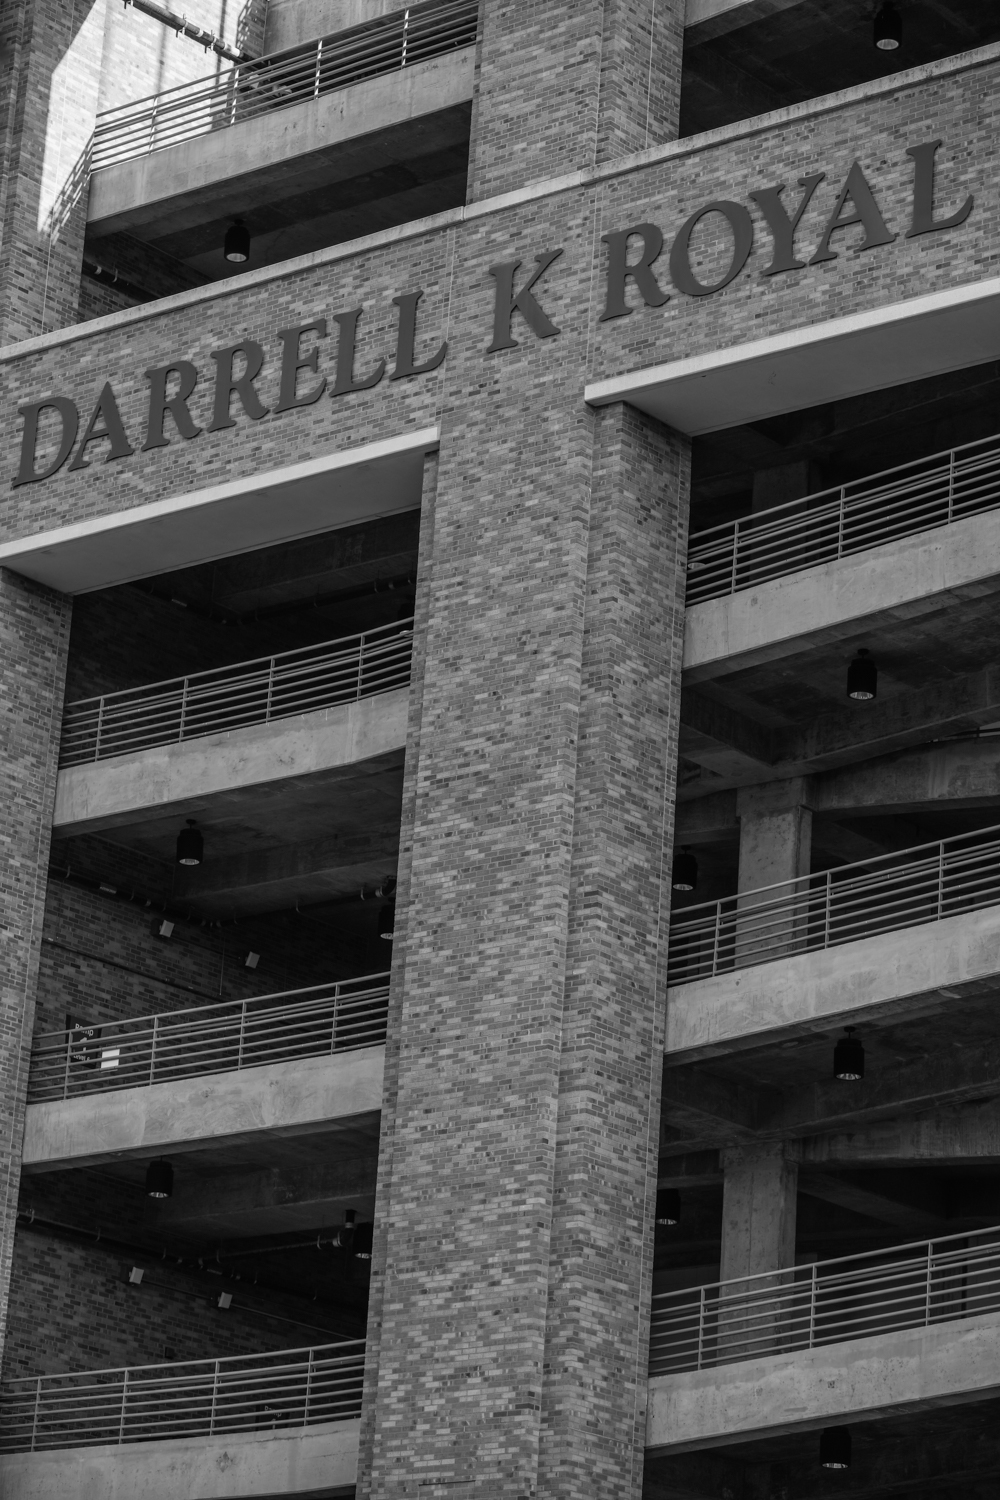 Darrell Royal Stadium